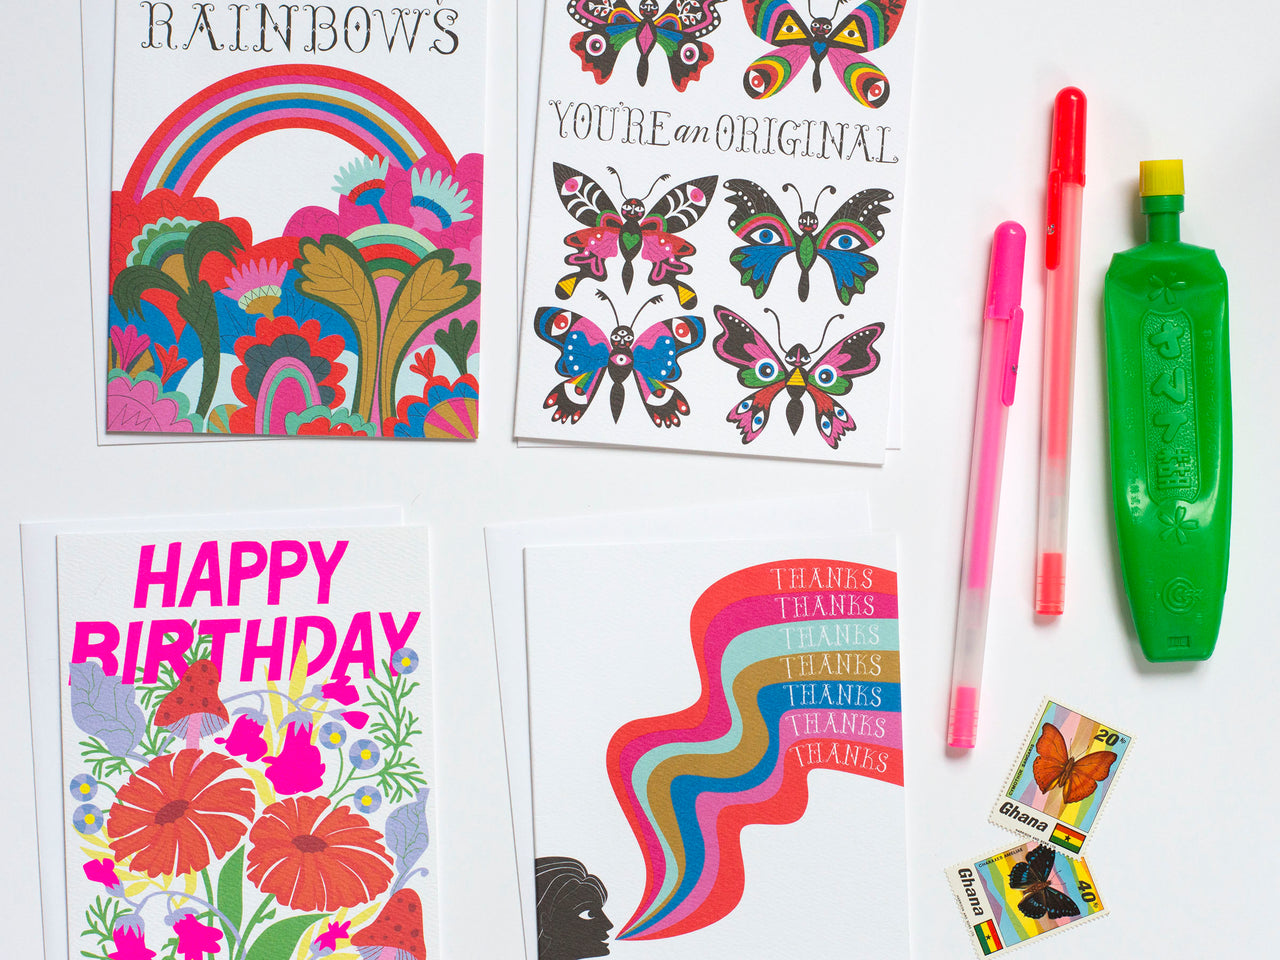 new rainbow and butterfly notecards at banquet workshop